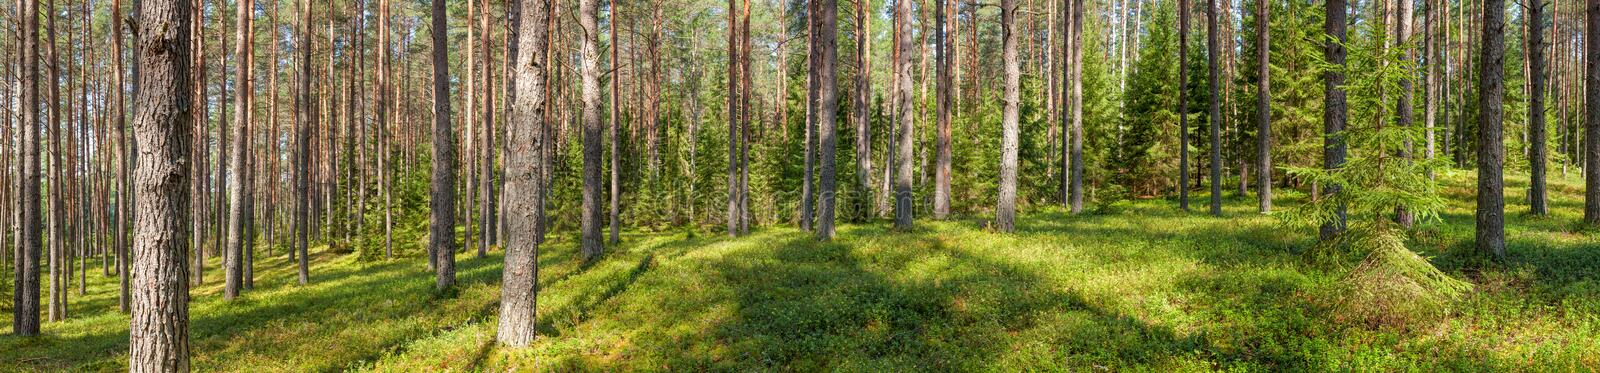 Summer pine forest panorama stock photos